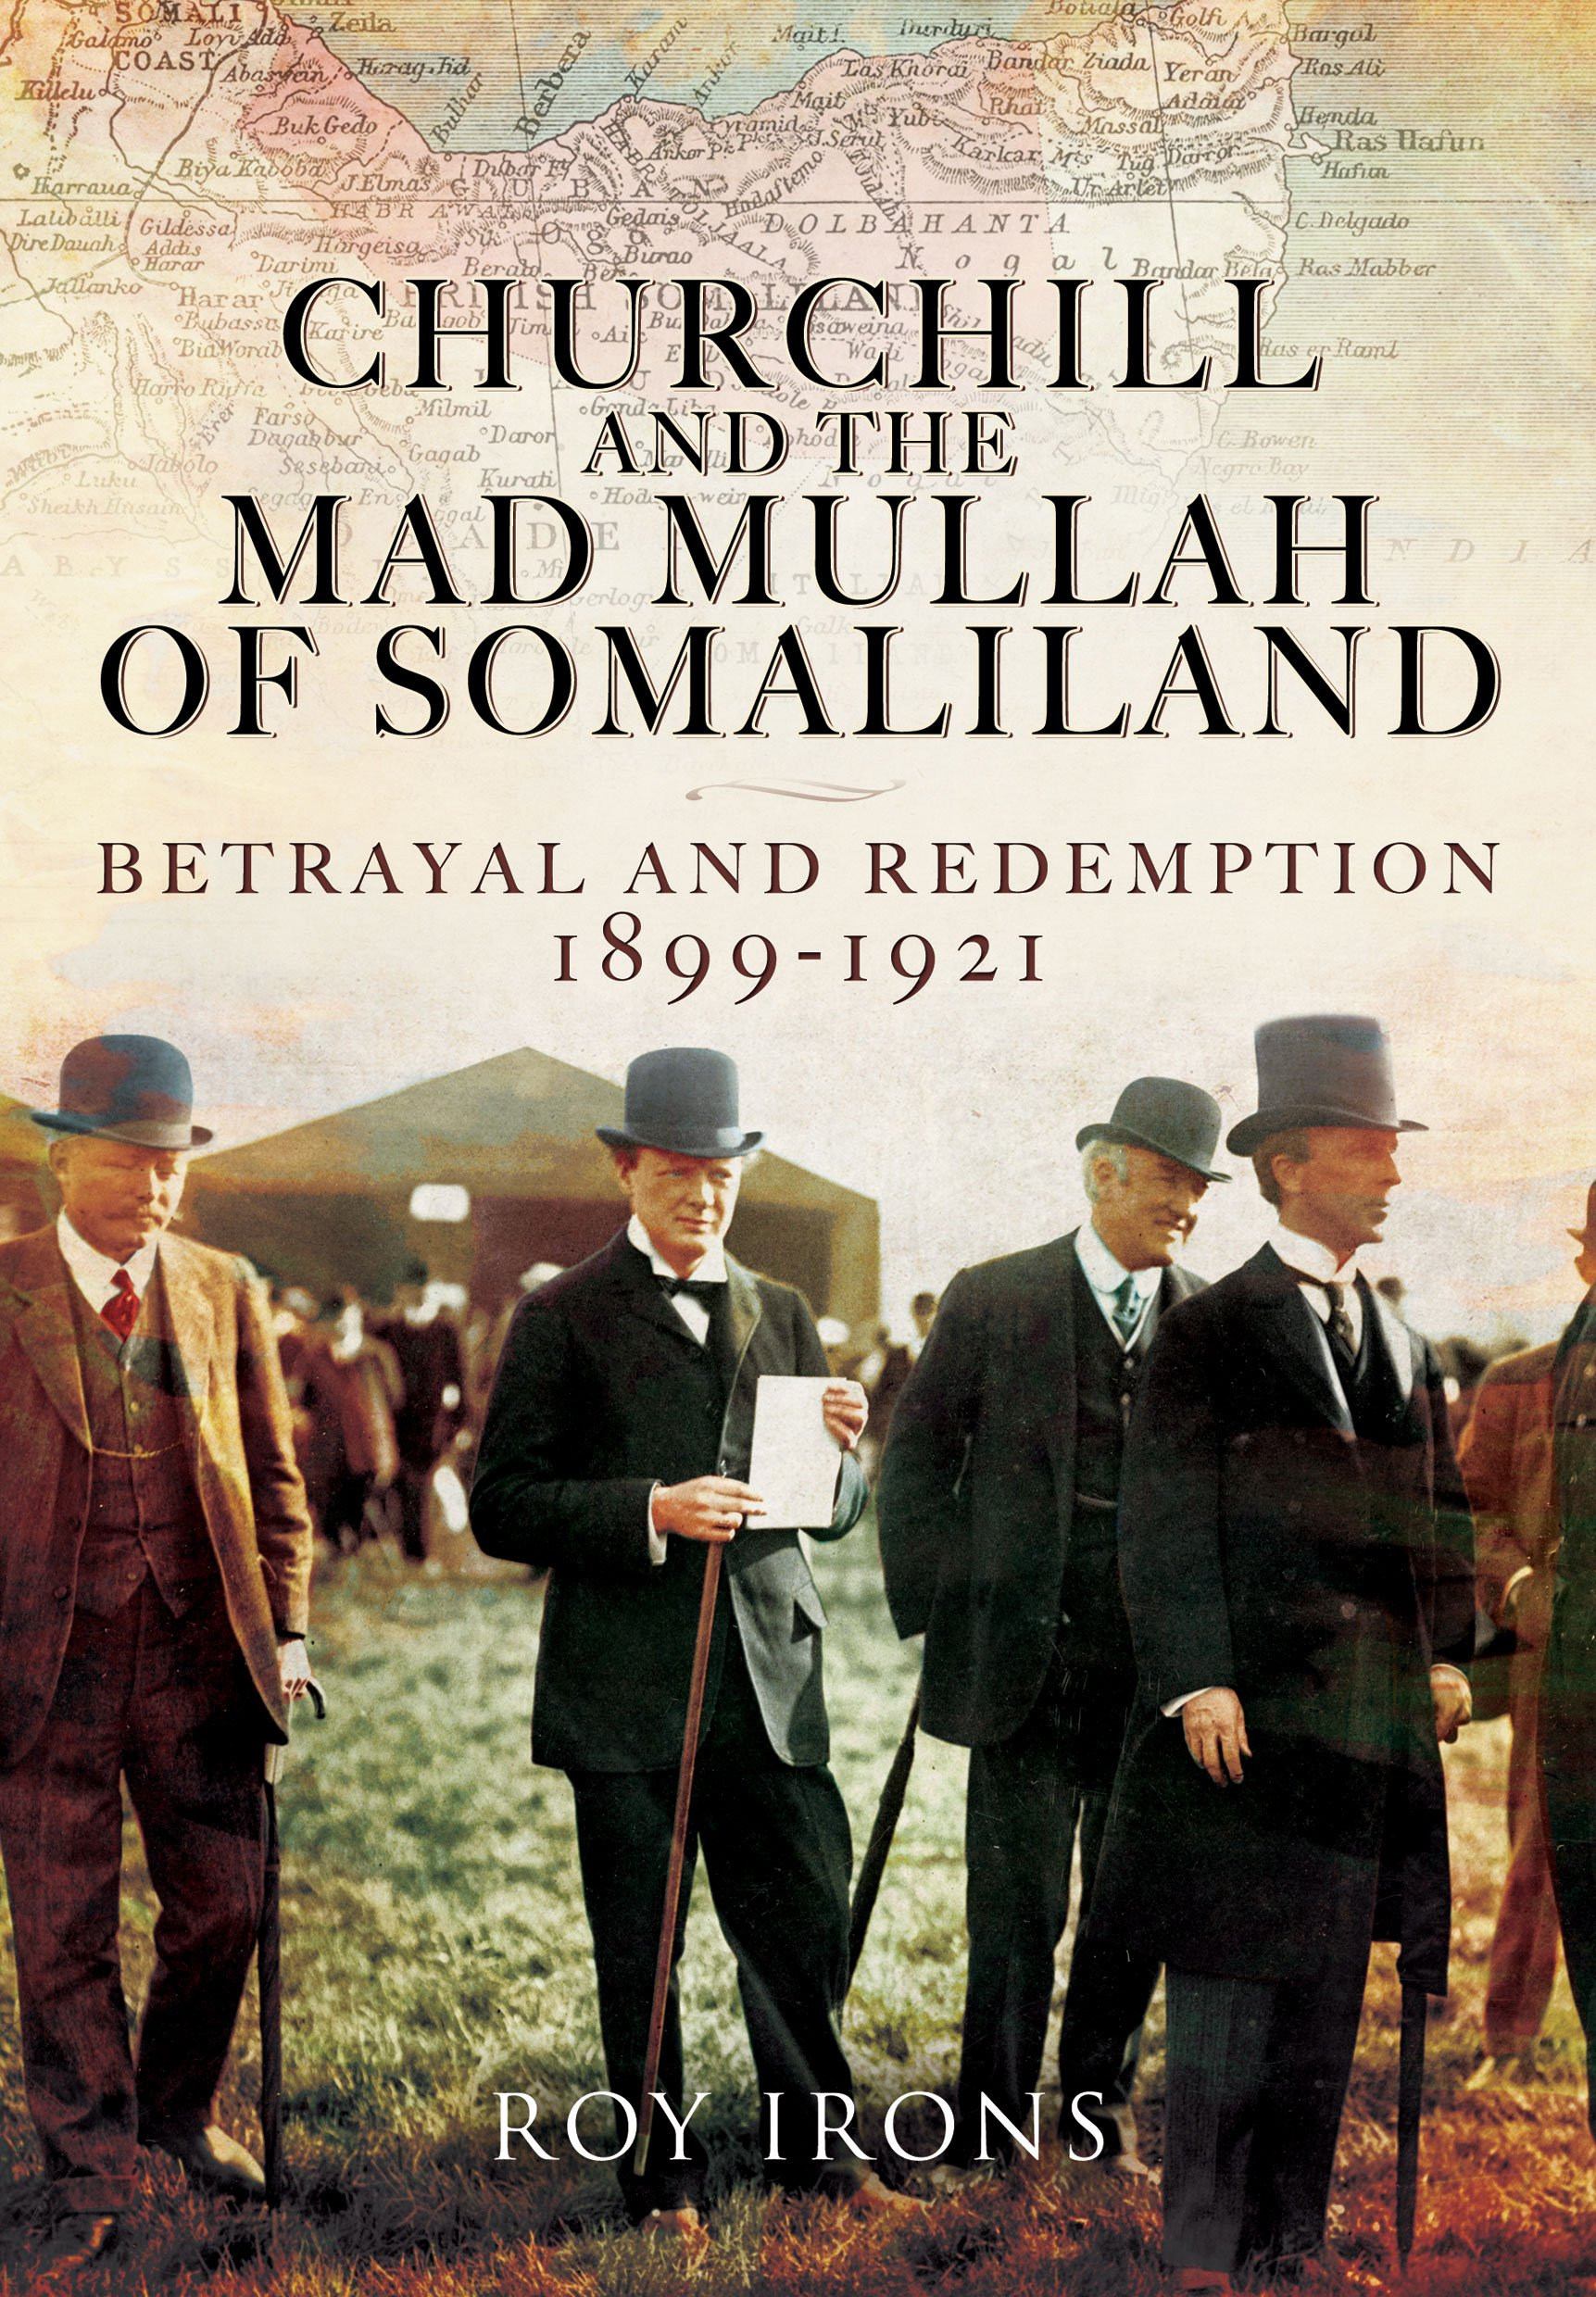 Amazon.com: Churchill and the Mad Mullah of Somaliland: Betrayal and  Redemption 1899-1921 (9781783463800): Roy Irons: Books